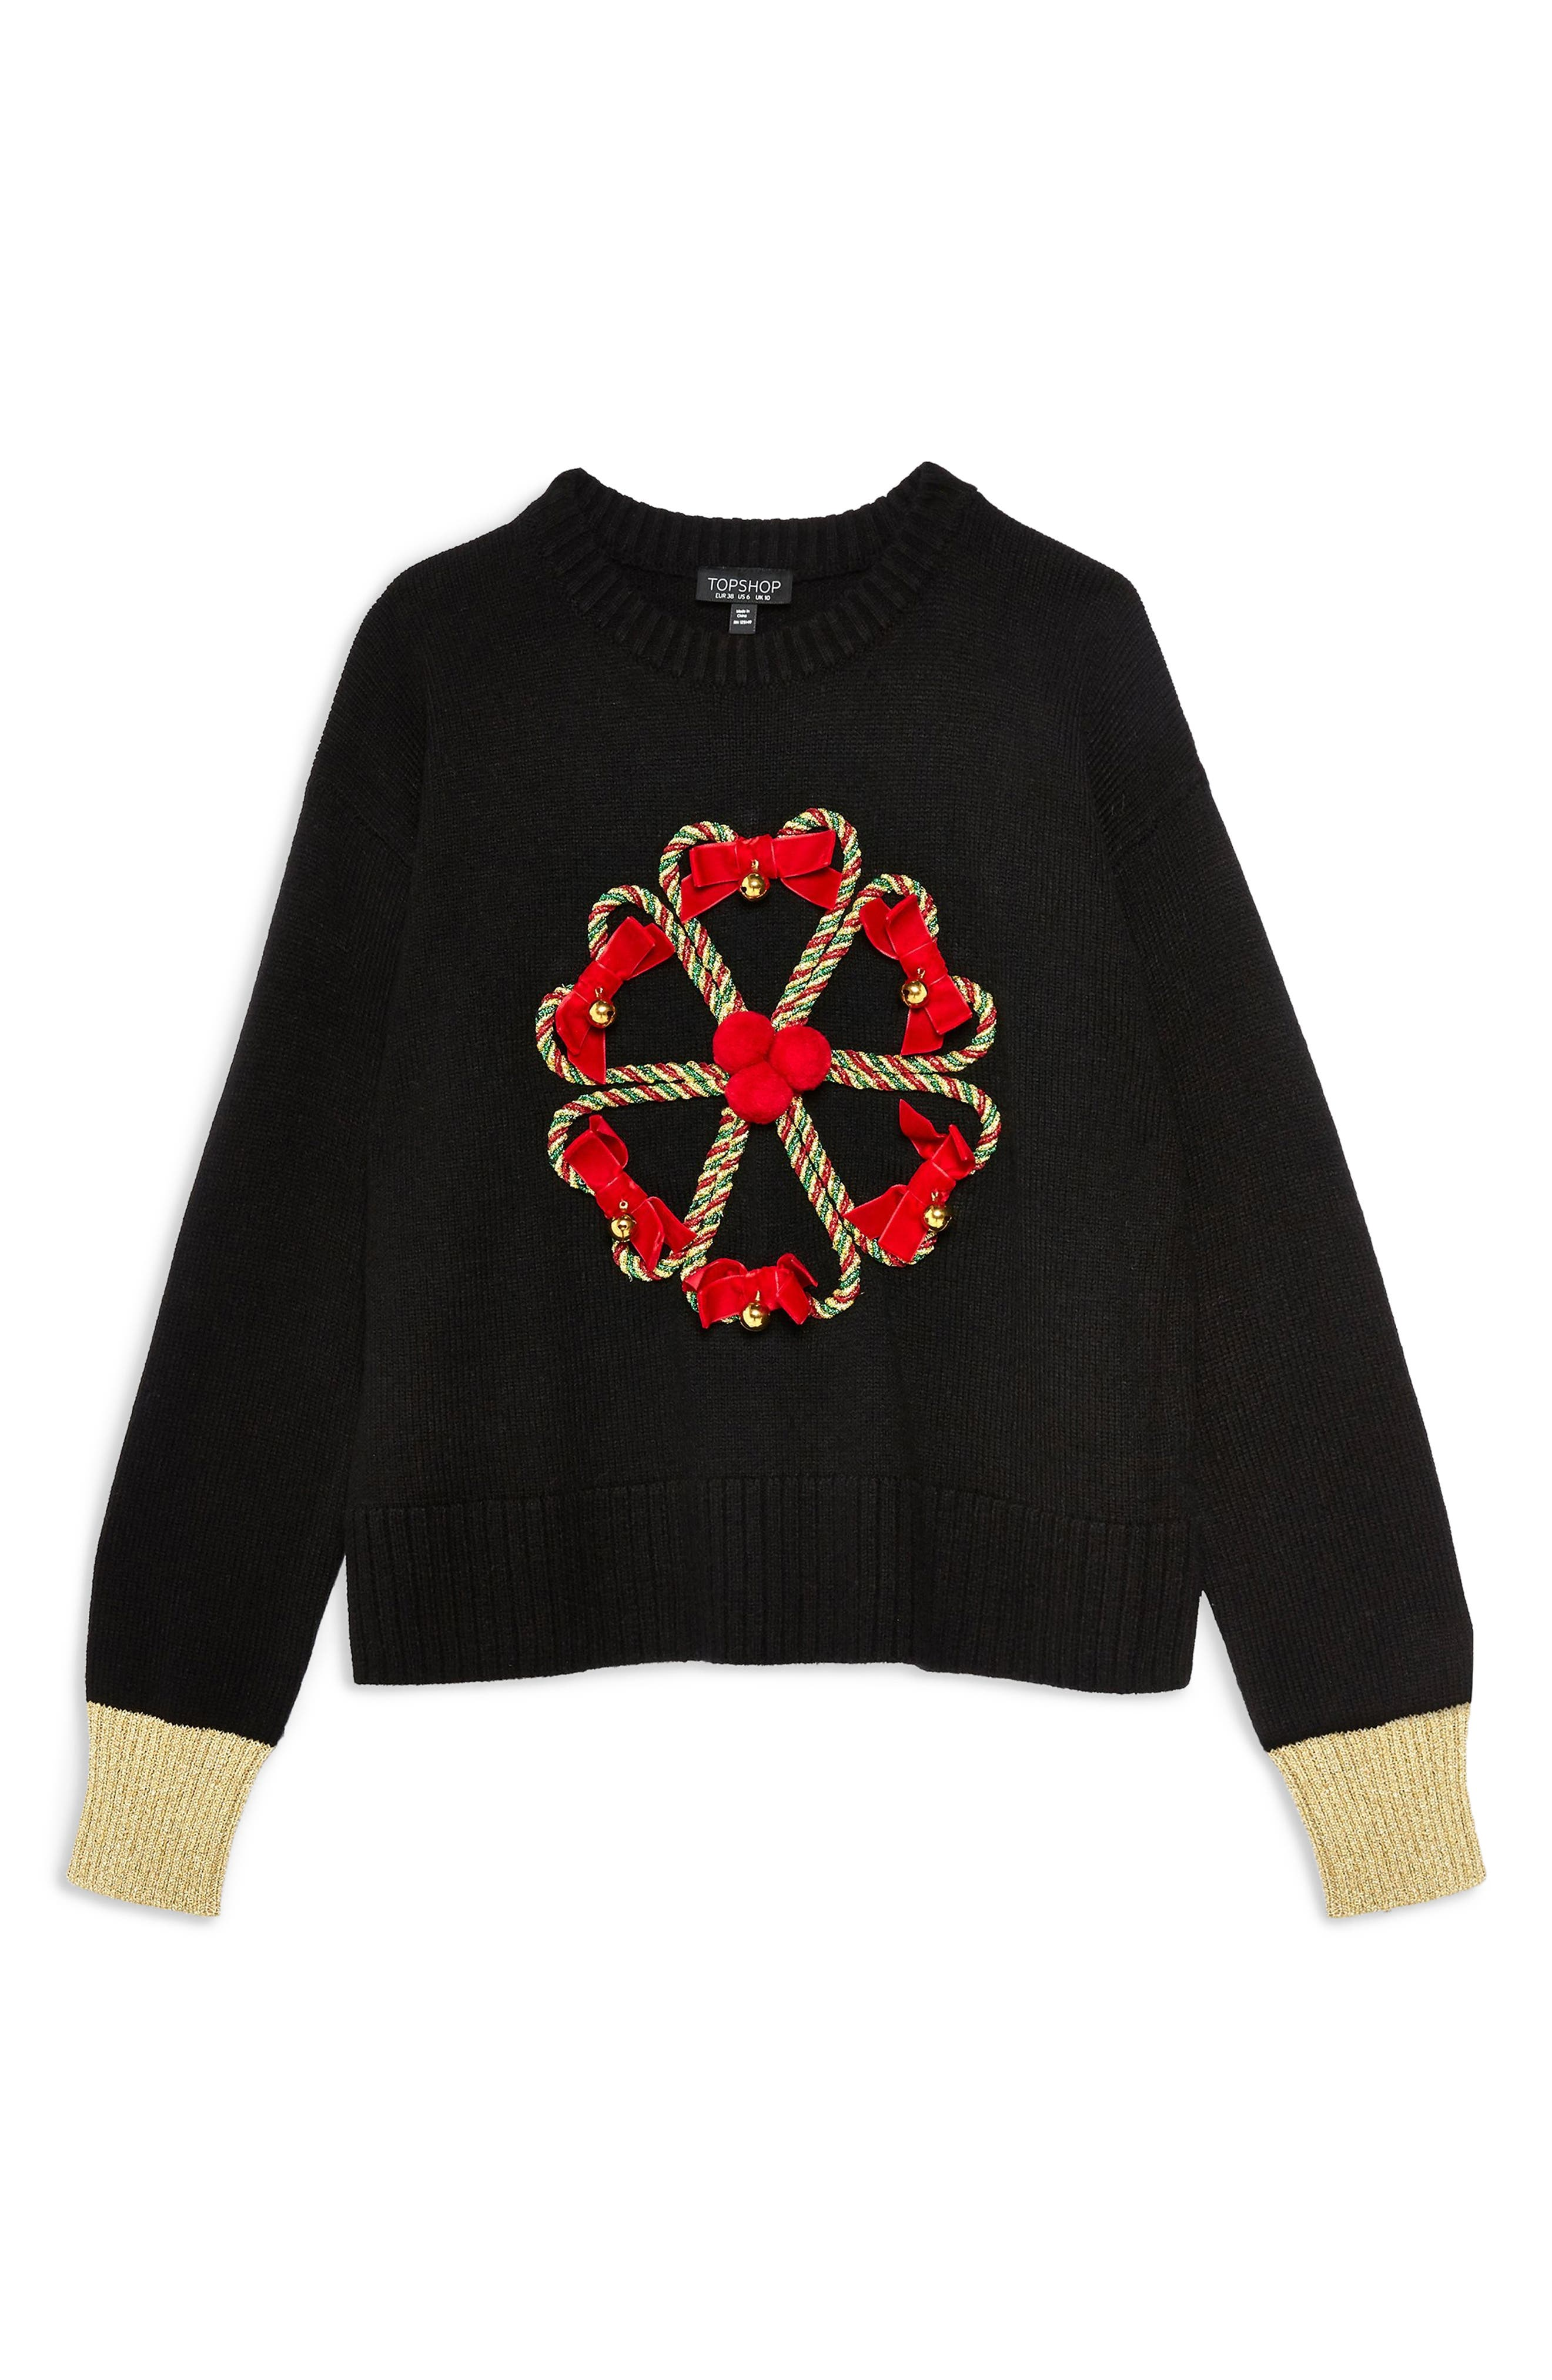 TOPSHOP,                             Christmas Candy Cane Wreath Sweater,                             Alternate thumbnail 3, color,                             001